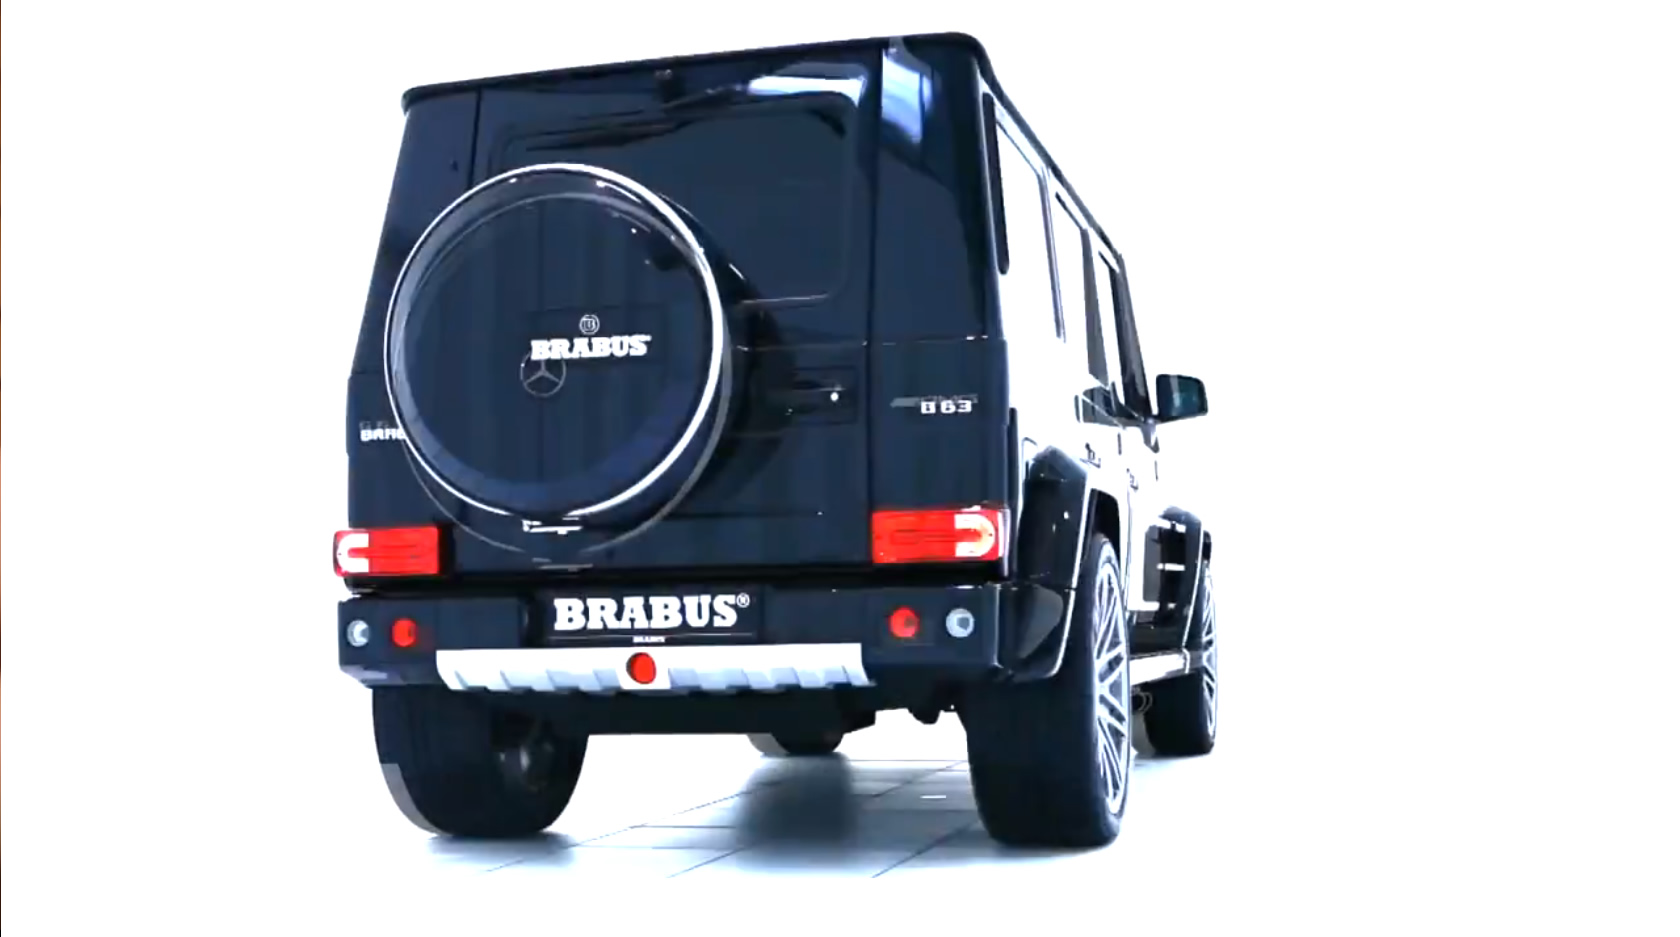 BRABUS Widestar G63 AMG Unveiled Ahead of Essen Motor Show